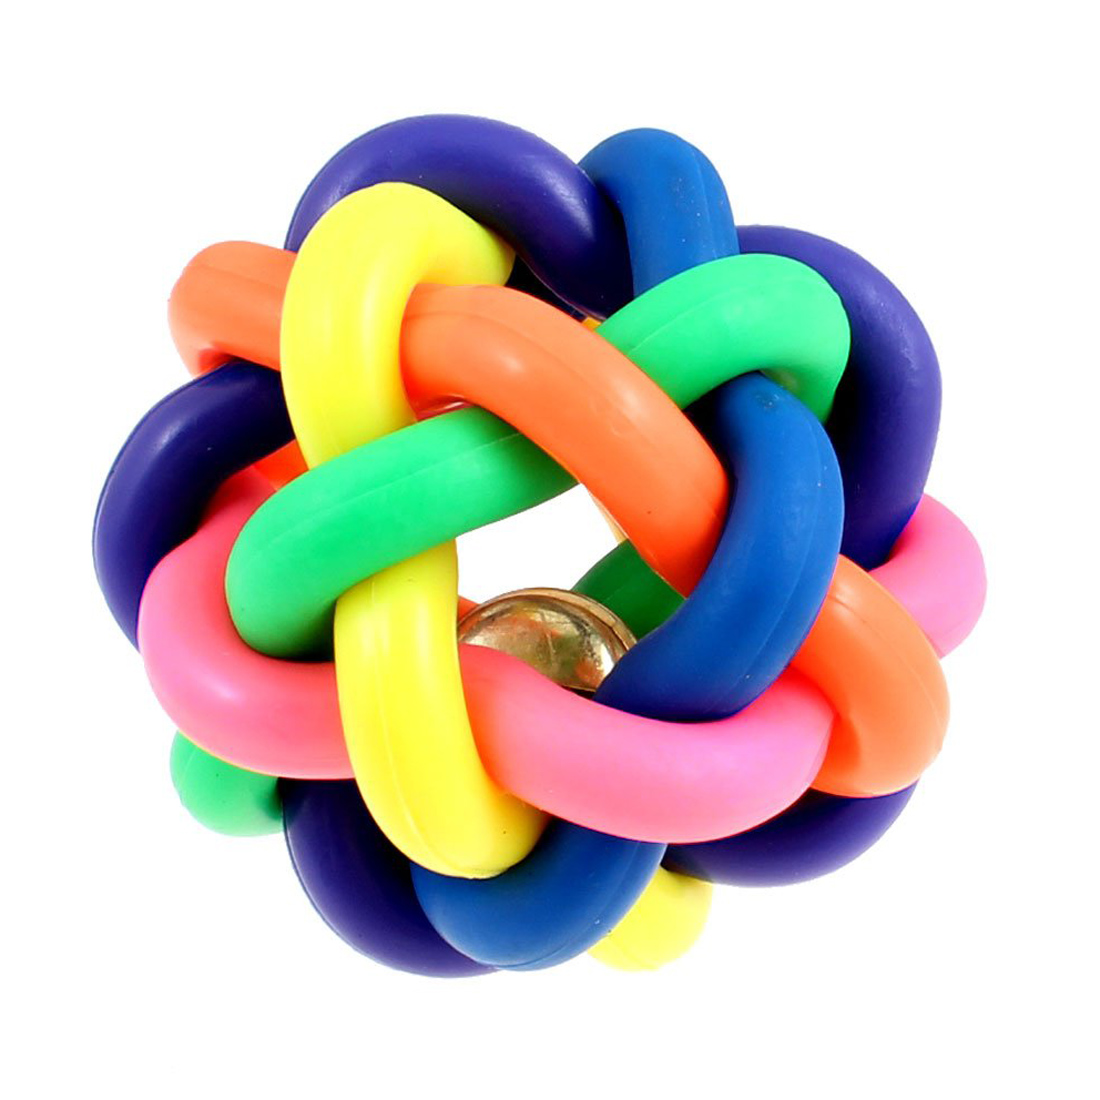 Toy Rubber Balls : Cm diameter cord woven jingle bell pet dog play rubber